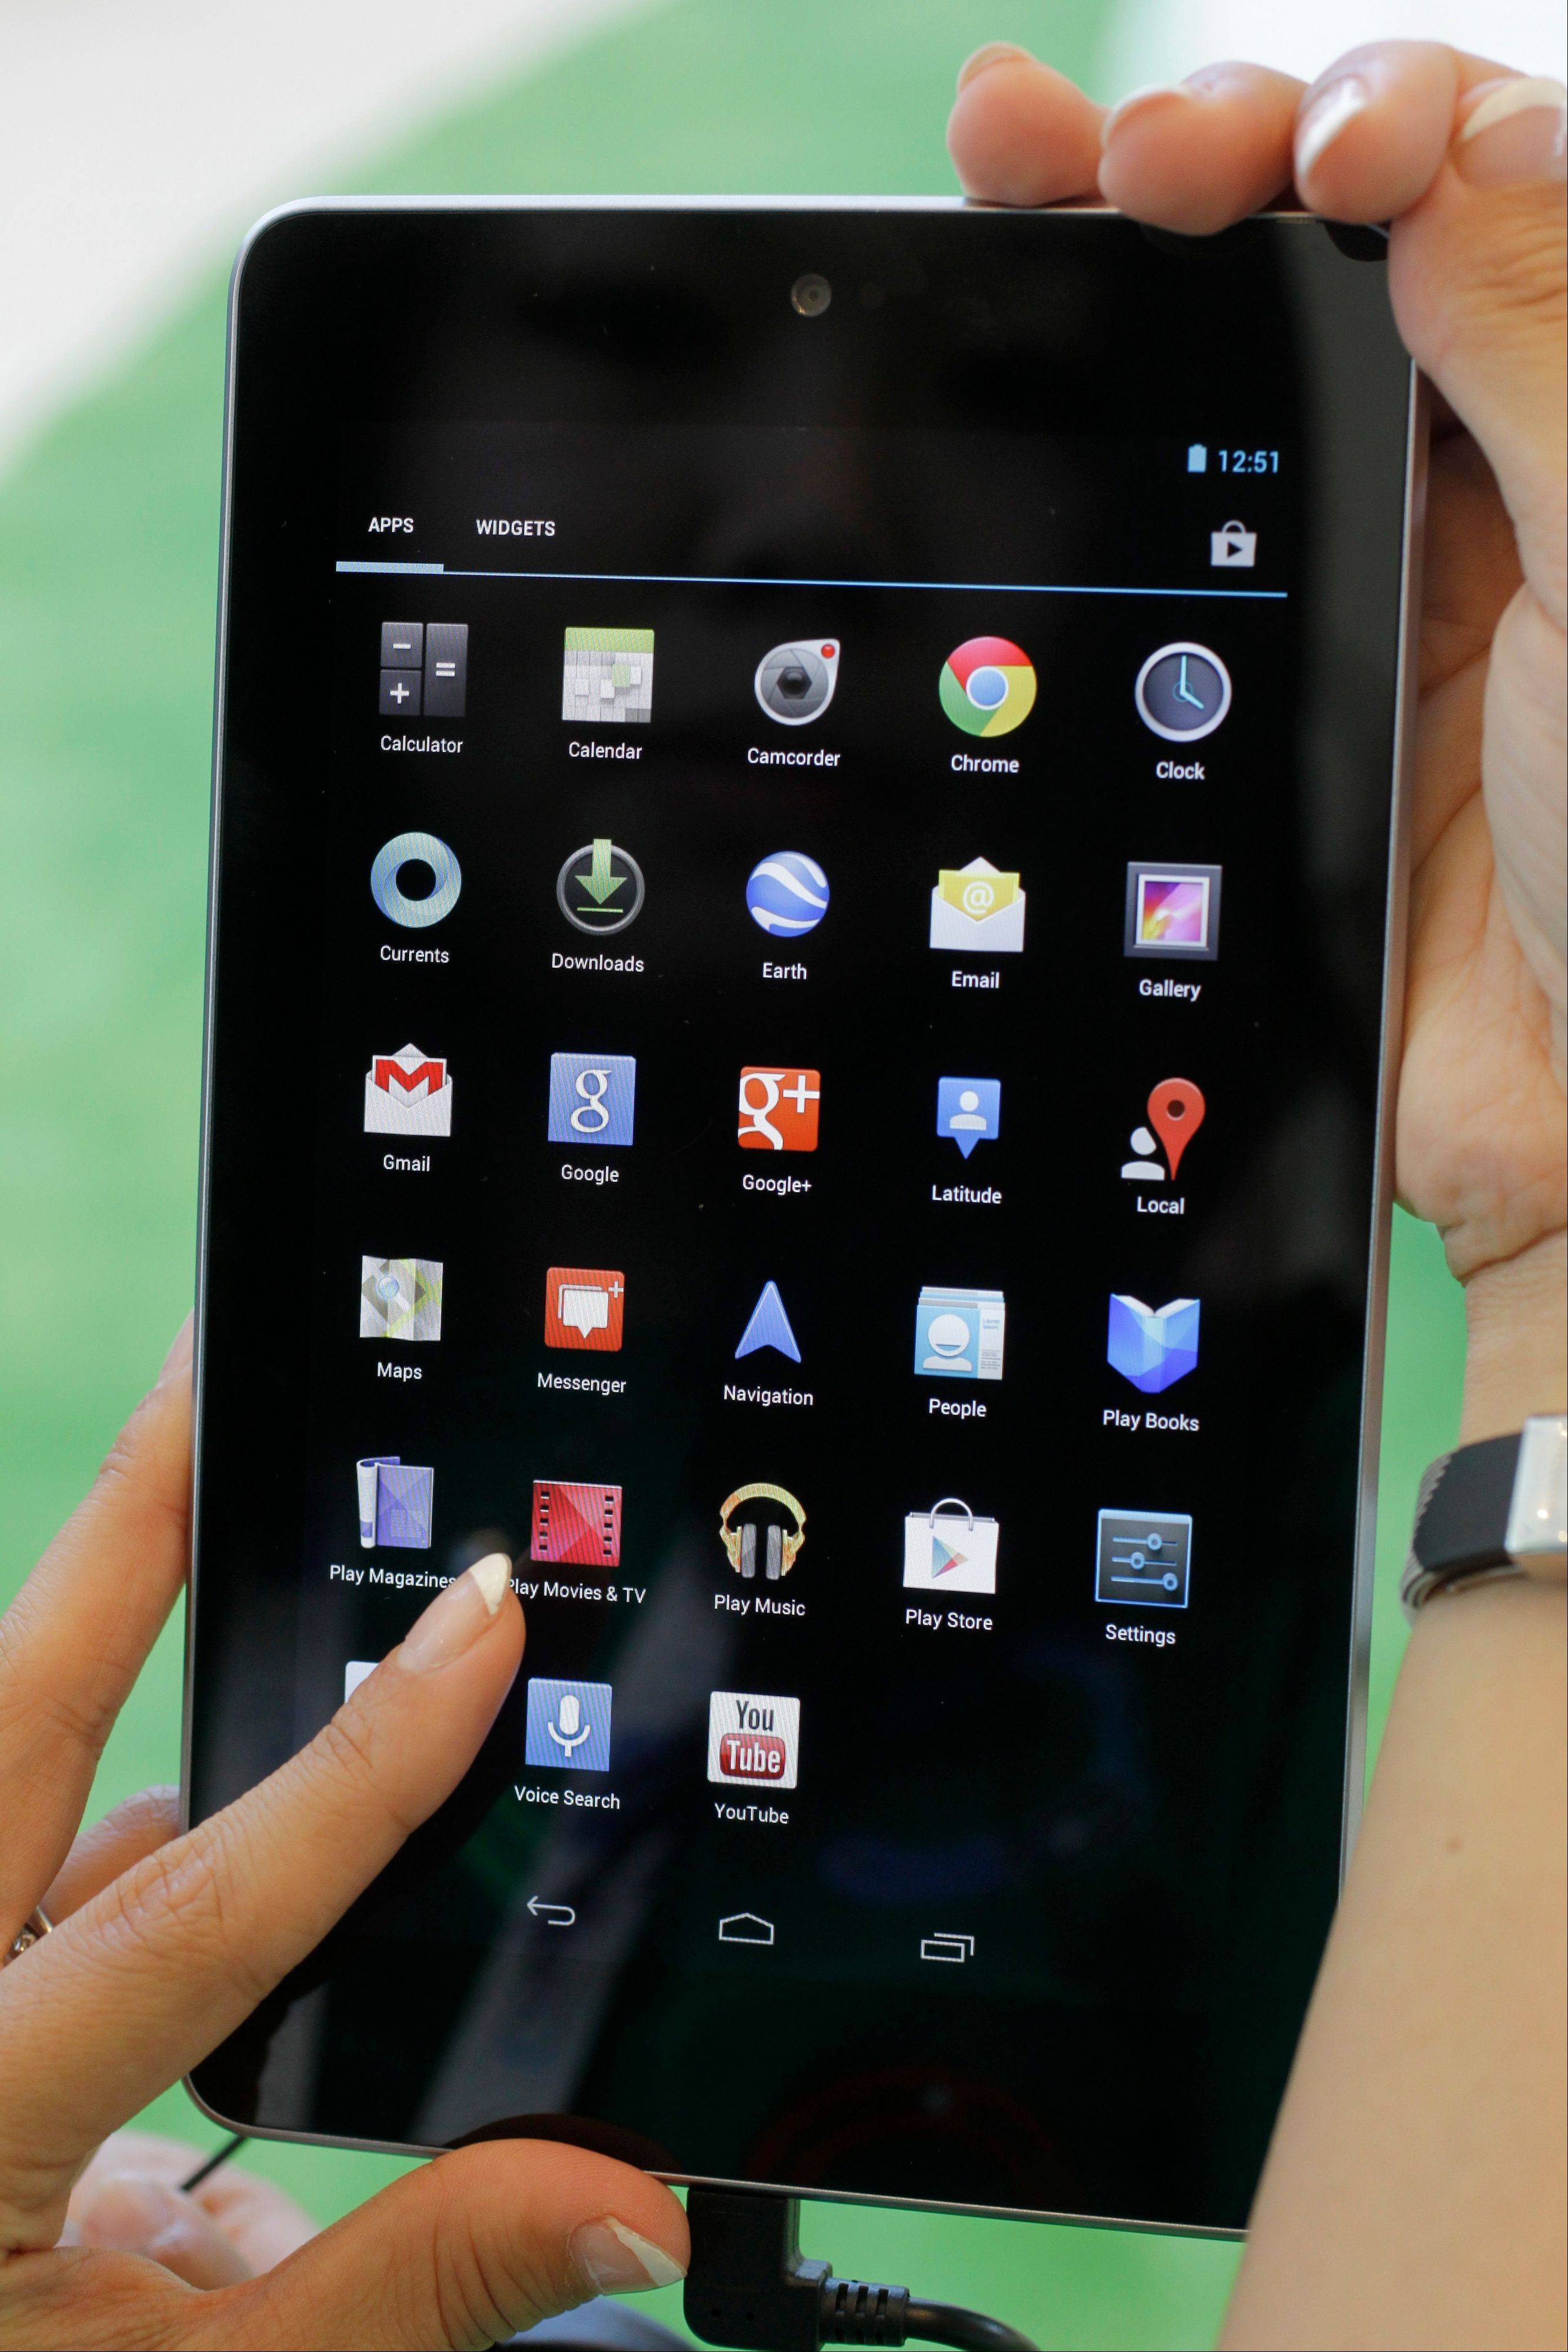 Google's Cheryl Pon shows off apps on the new Google Nexus 7 tablet at the Google I/O conference in San Francisco on June 27. The Nexus 7 costs $199, the same that Amazon and Barnes & Noble charge for their tablet. Google is taking preorders for delivery in mid-July.